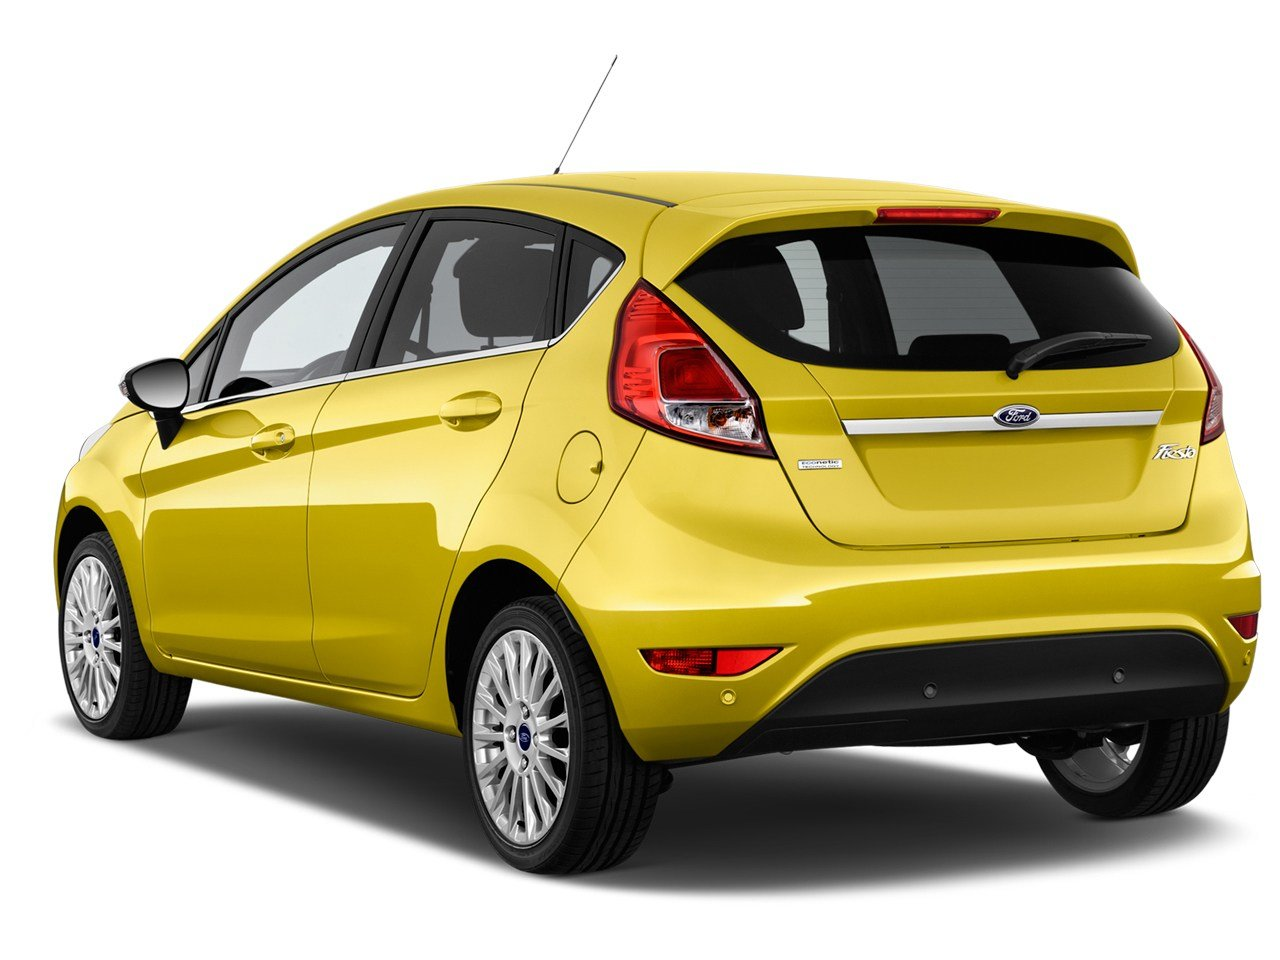 Latest Ford Fiesta 2018 1 6L Trend In Uae New Car Prices Specs Free Download